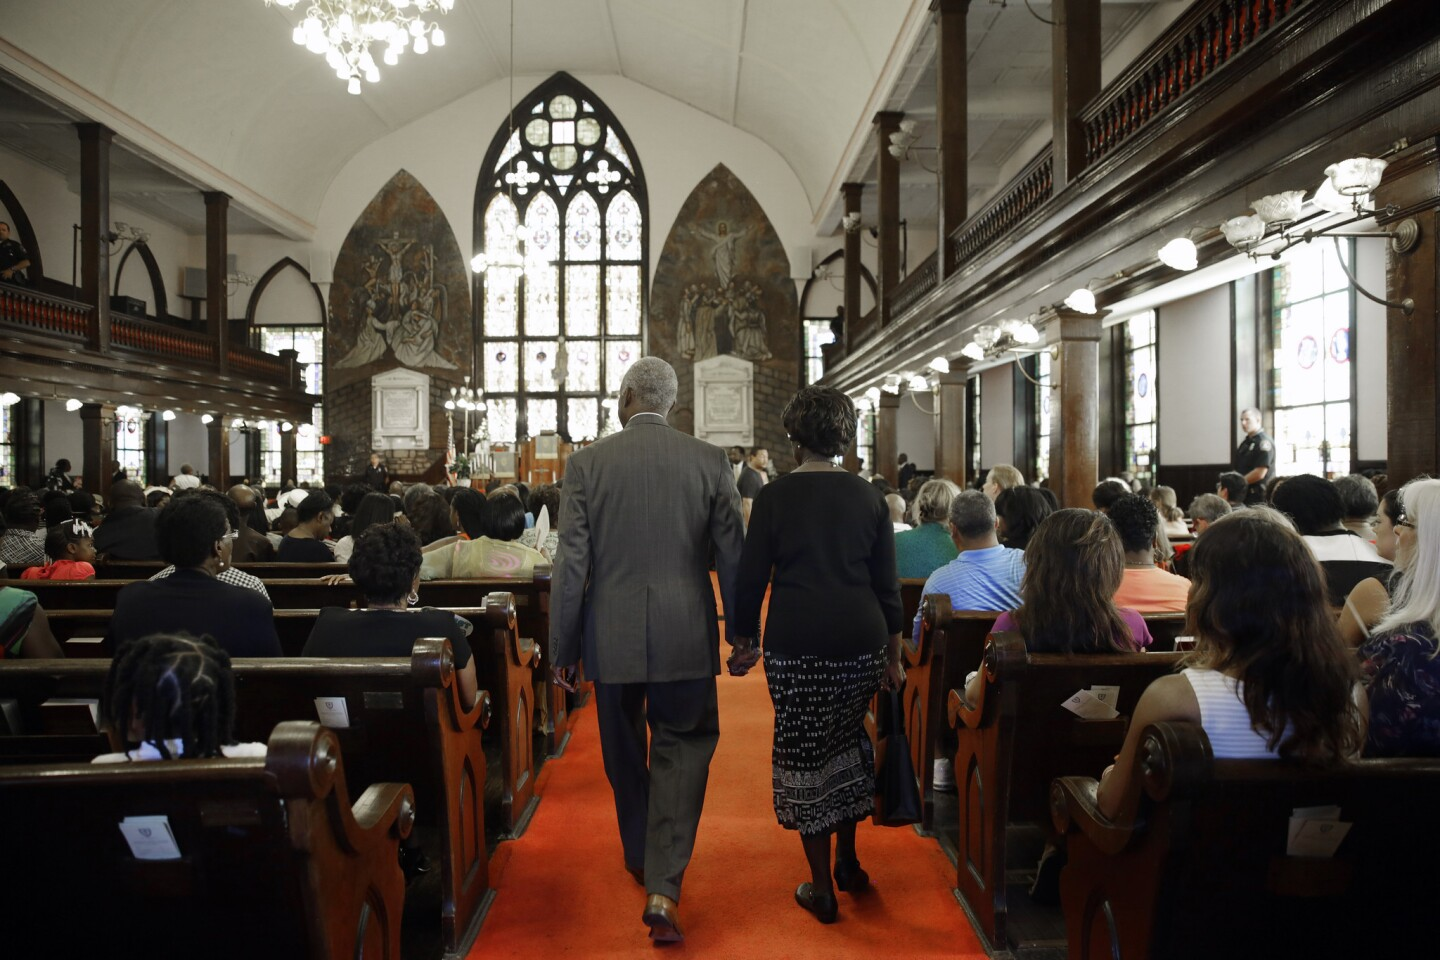 Worshipers enter Emanuel A.M.E. Church in Charleston, S.C., four days after a mass shooting that claimed the lives of its pastor and eight others.